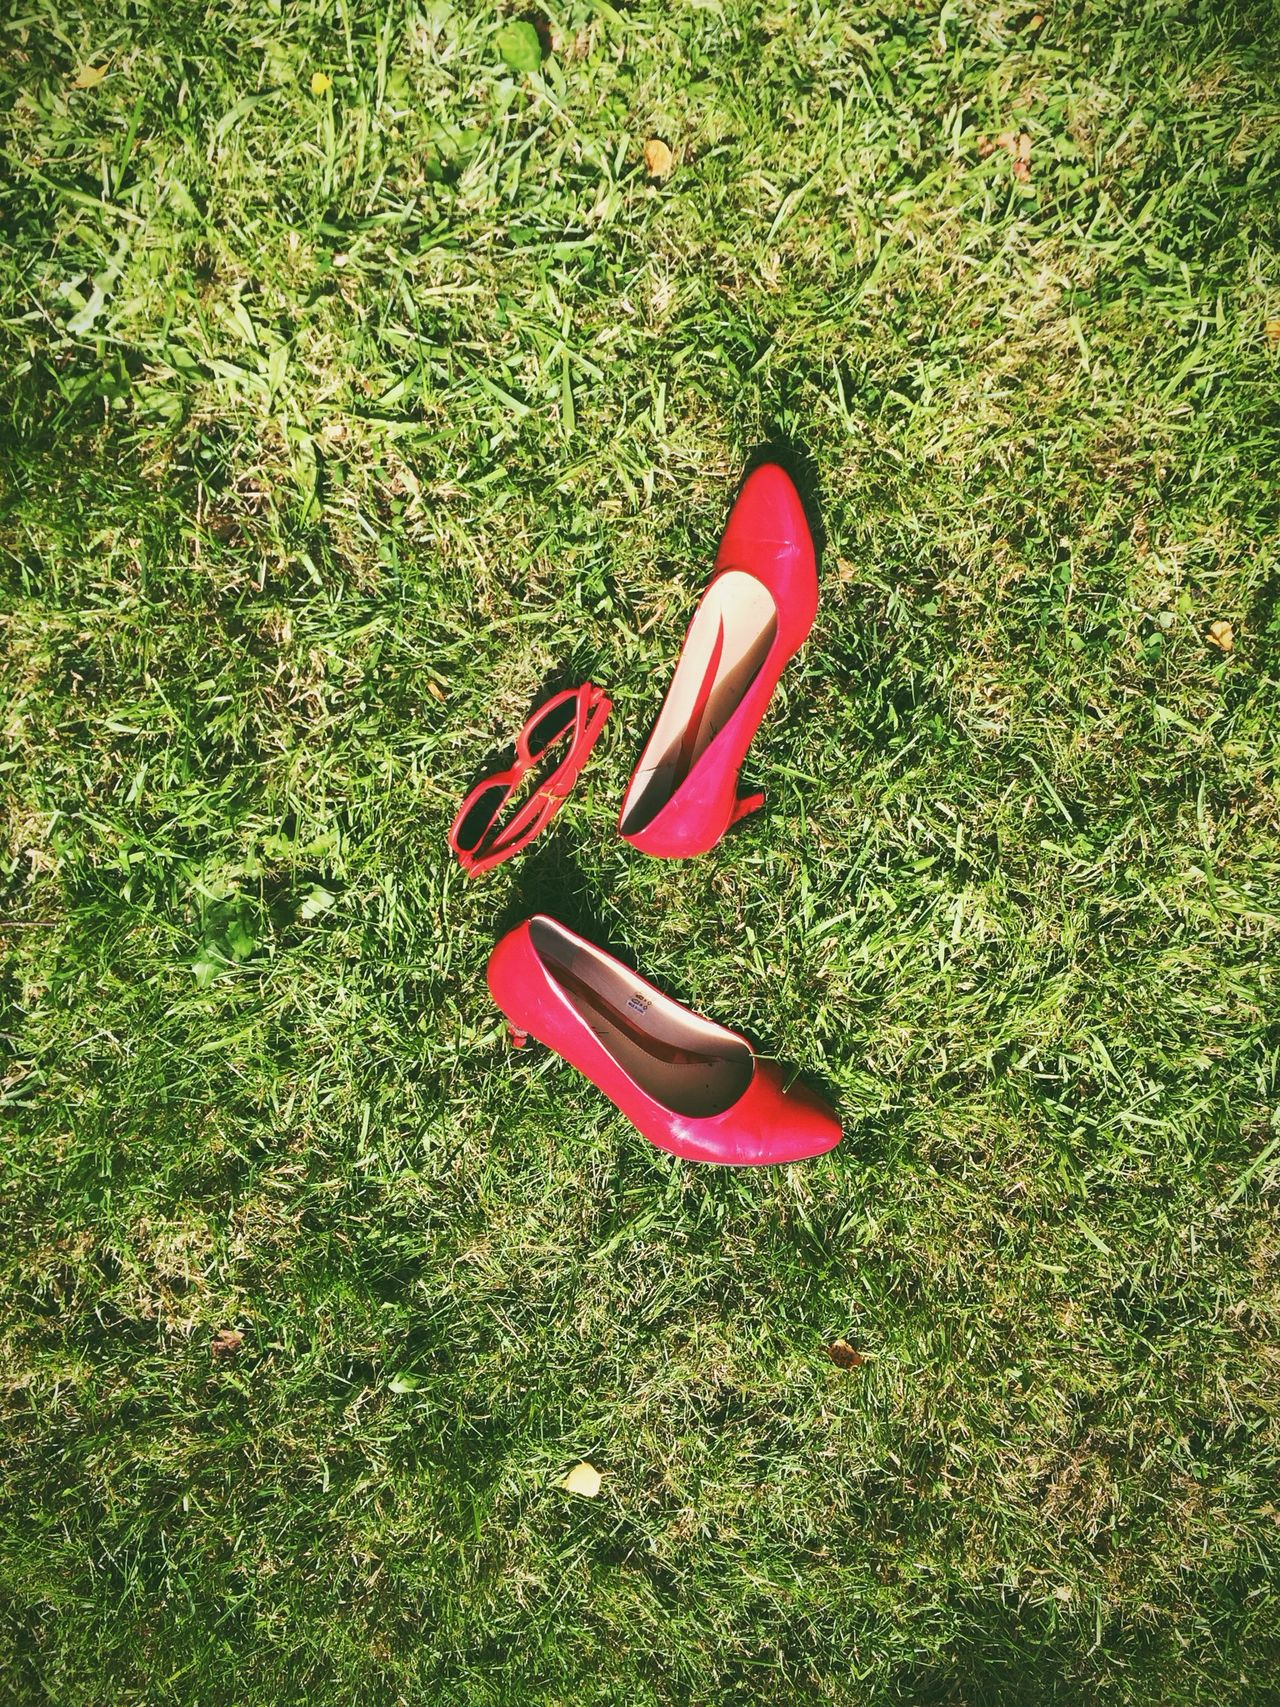 Summer's here! Enjoying Life A Beautiful Day Grass Red Shoes